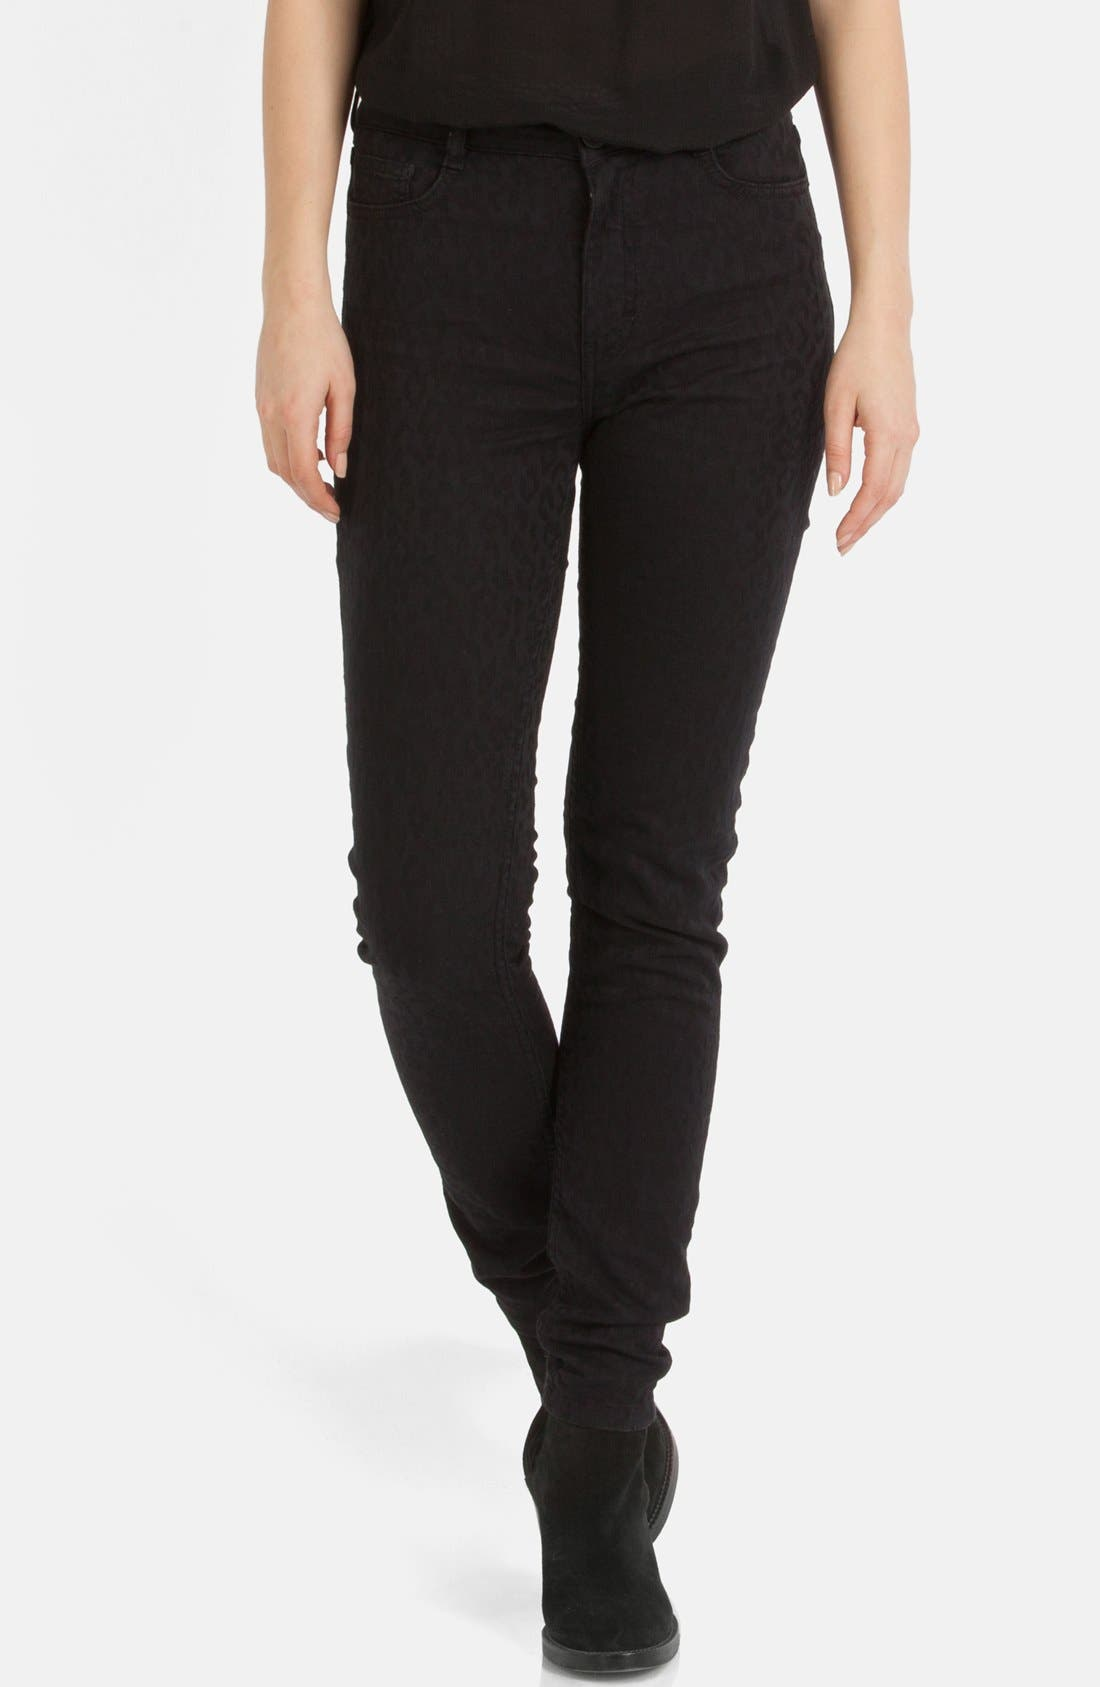 Alternate Image 1 Selected - maje 'Endless' Stretch Jacquard Skinny Jeans